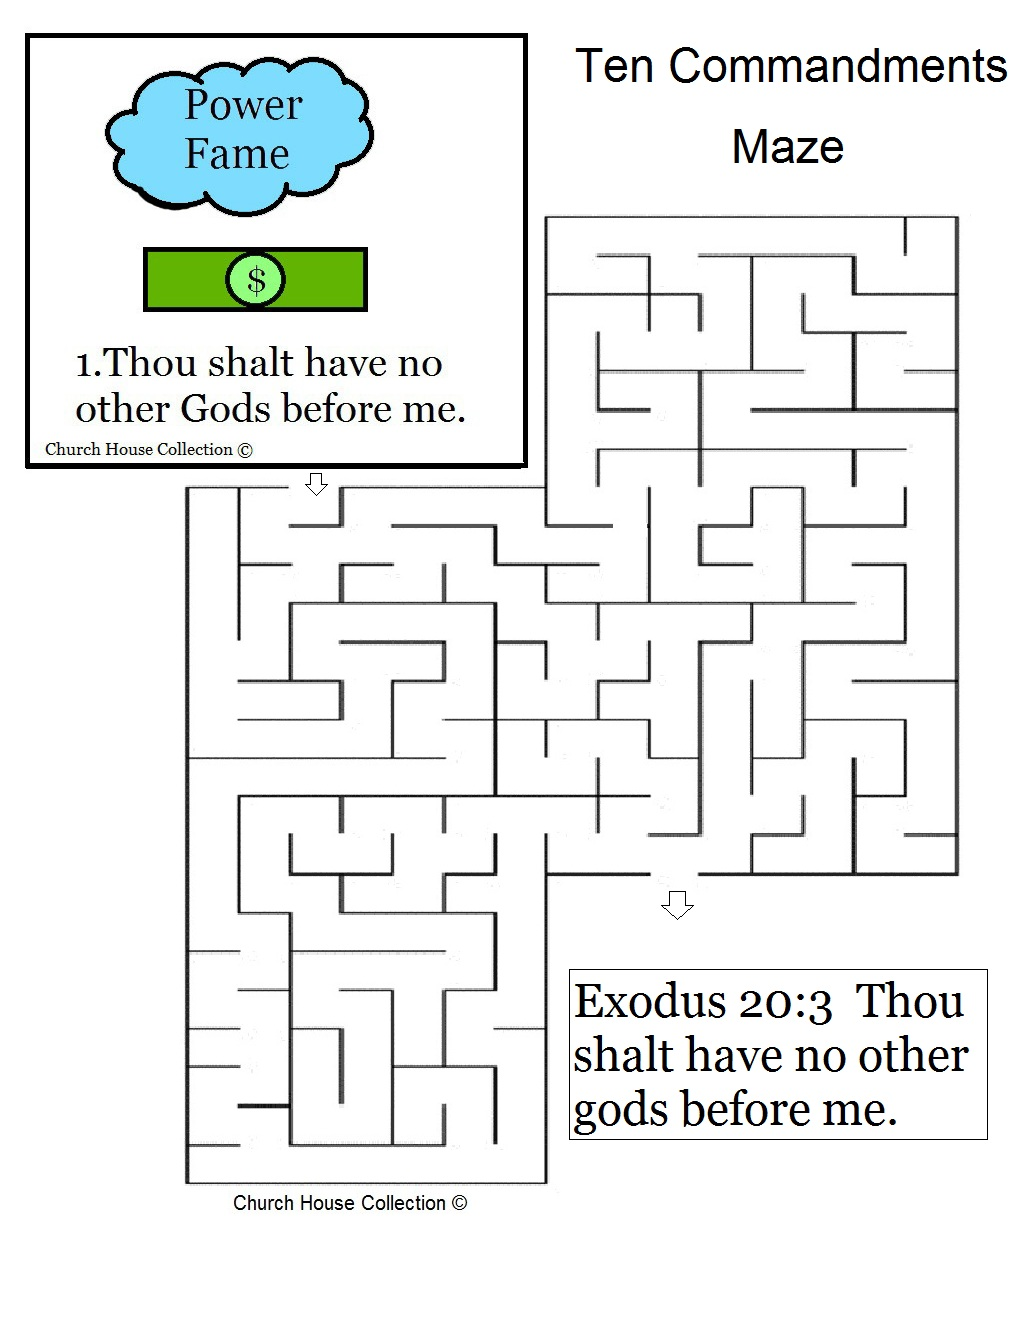 preschool 10 commandments games mazes